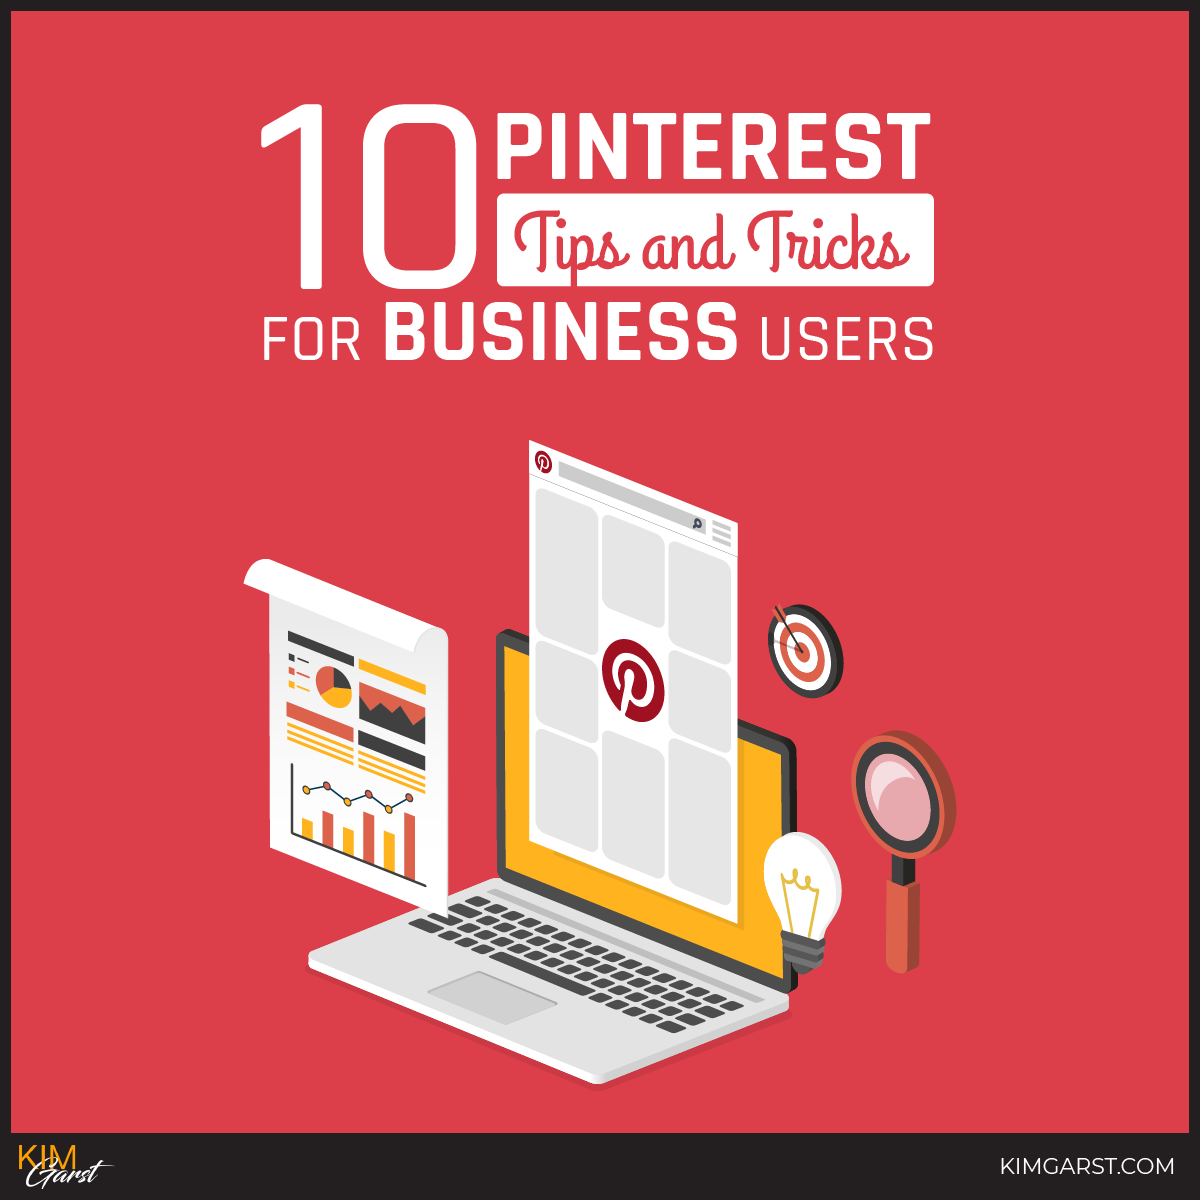 10 Pinterest Tips for Business Users Like You to Maximize